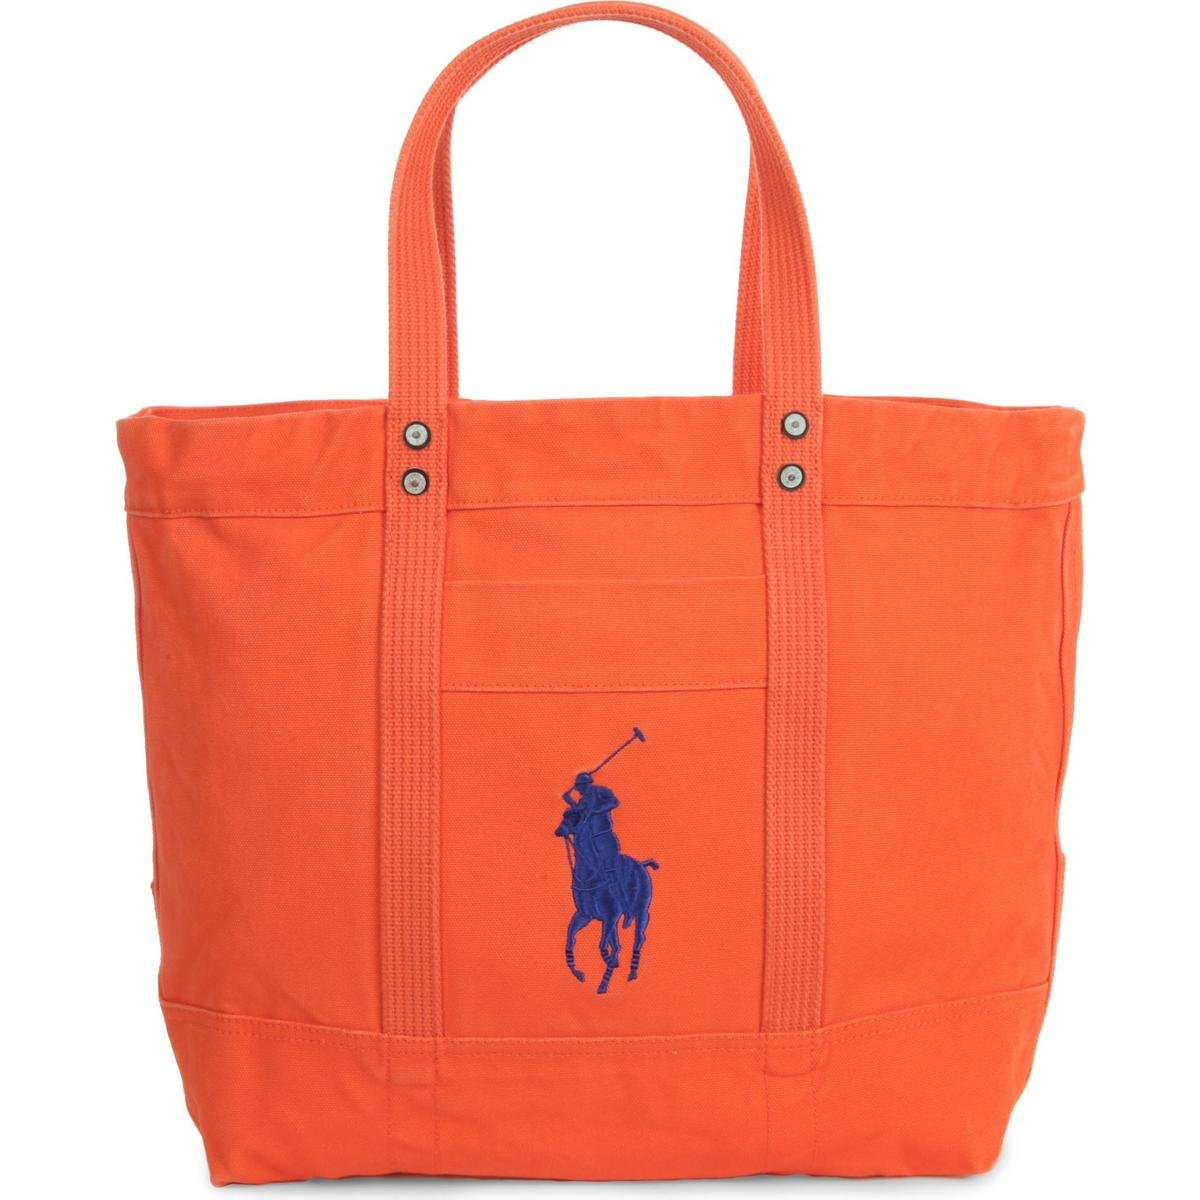 1715eb9d3cd57 Amazon.com  Polo Ralph Lauren Cotton Canvas Big Pony Zip Tote Bag (One  size